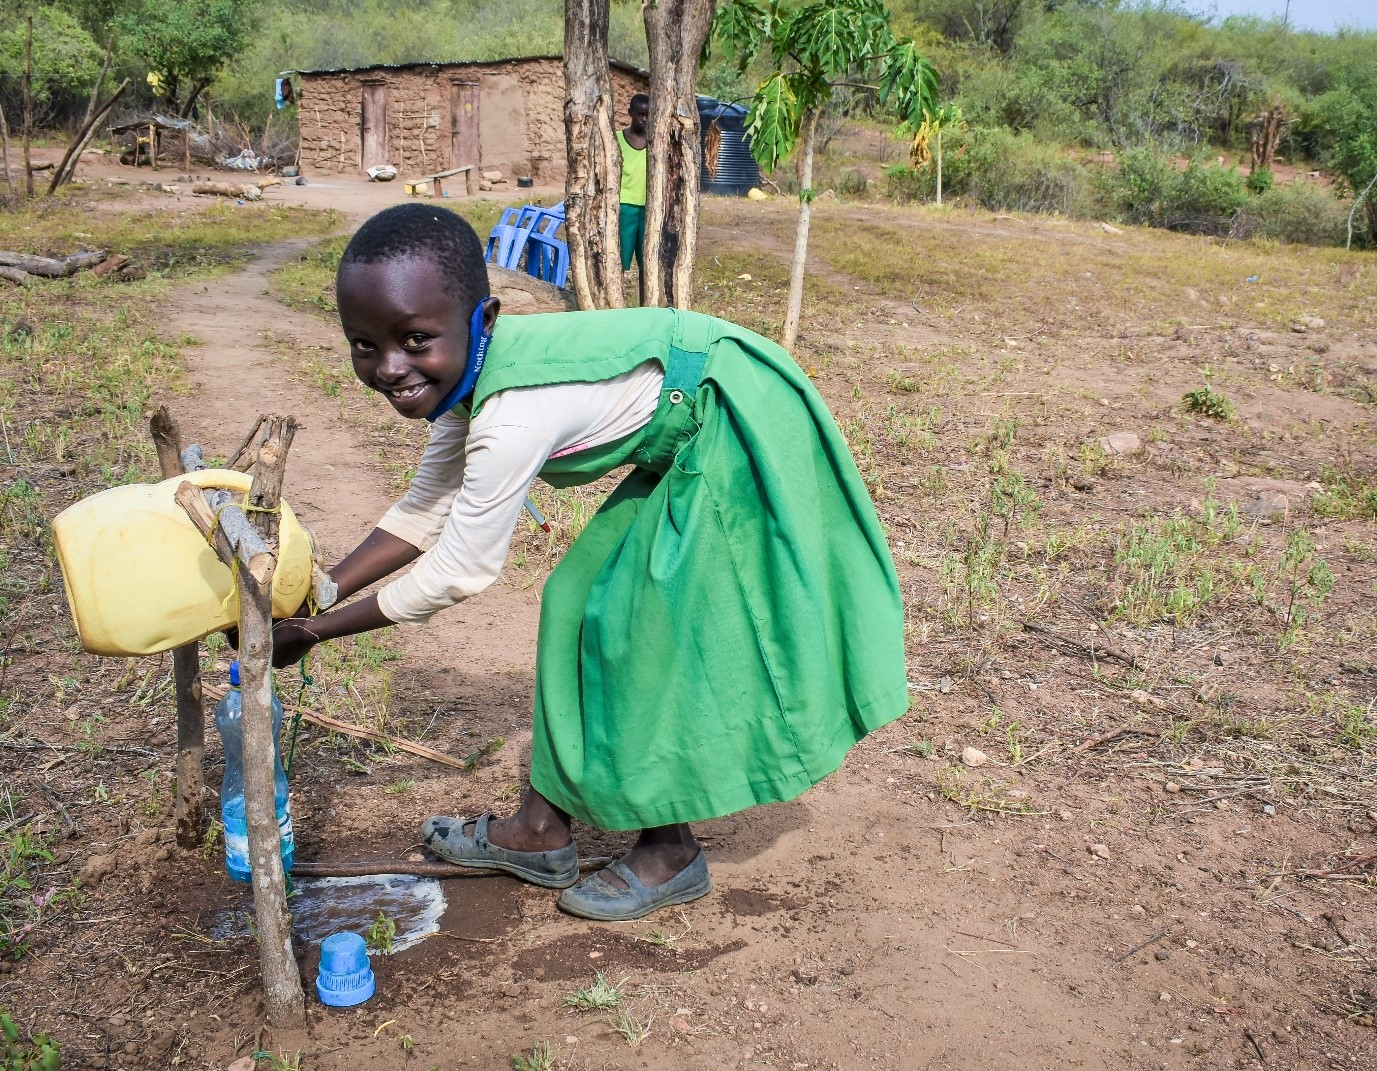 7 year old Joy-Faith washes her hands to prevent the spread of Covid. The home-made tap was made out of recycled household items. Photo : Denis Kioko / Trócaire